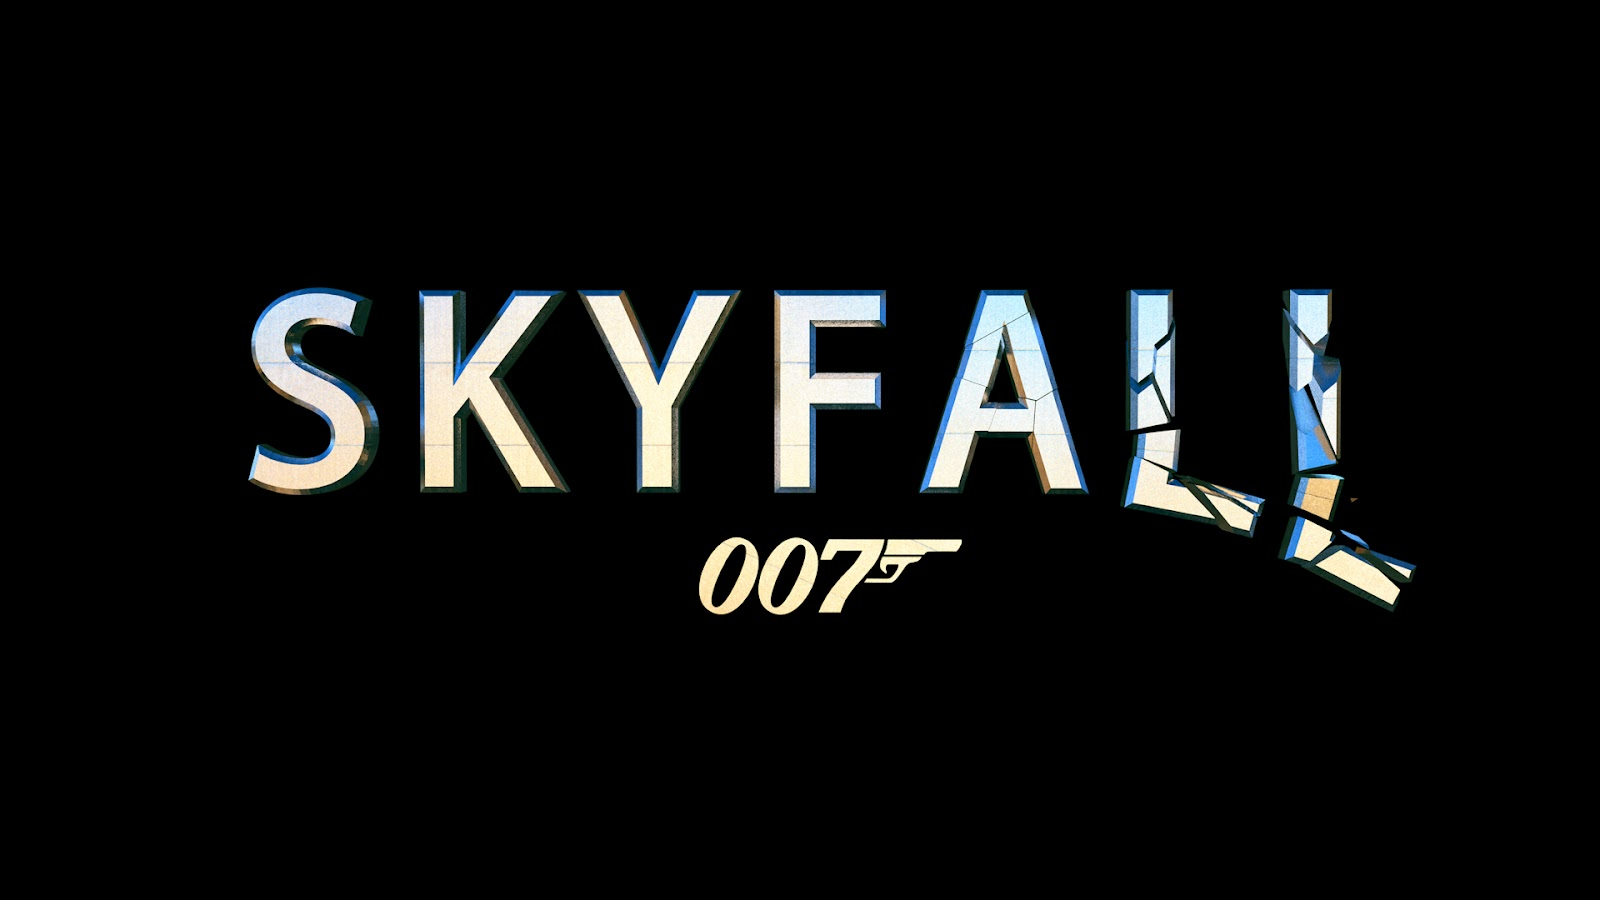 Skyfall HD Wallpapers - HD Wallpapers | Rooteto